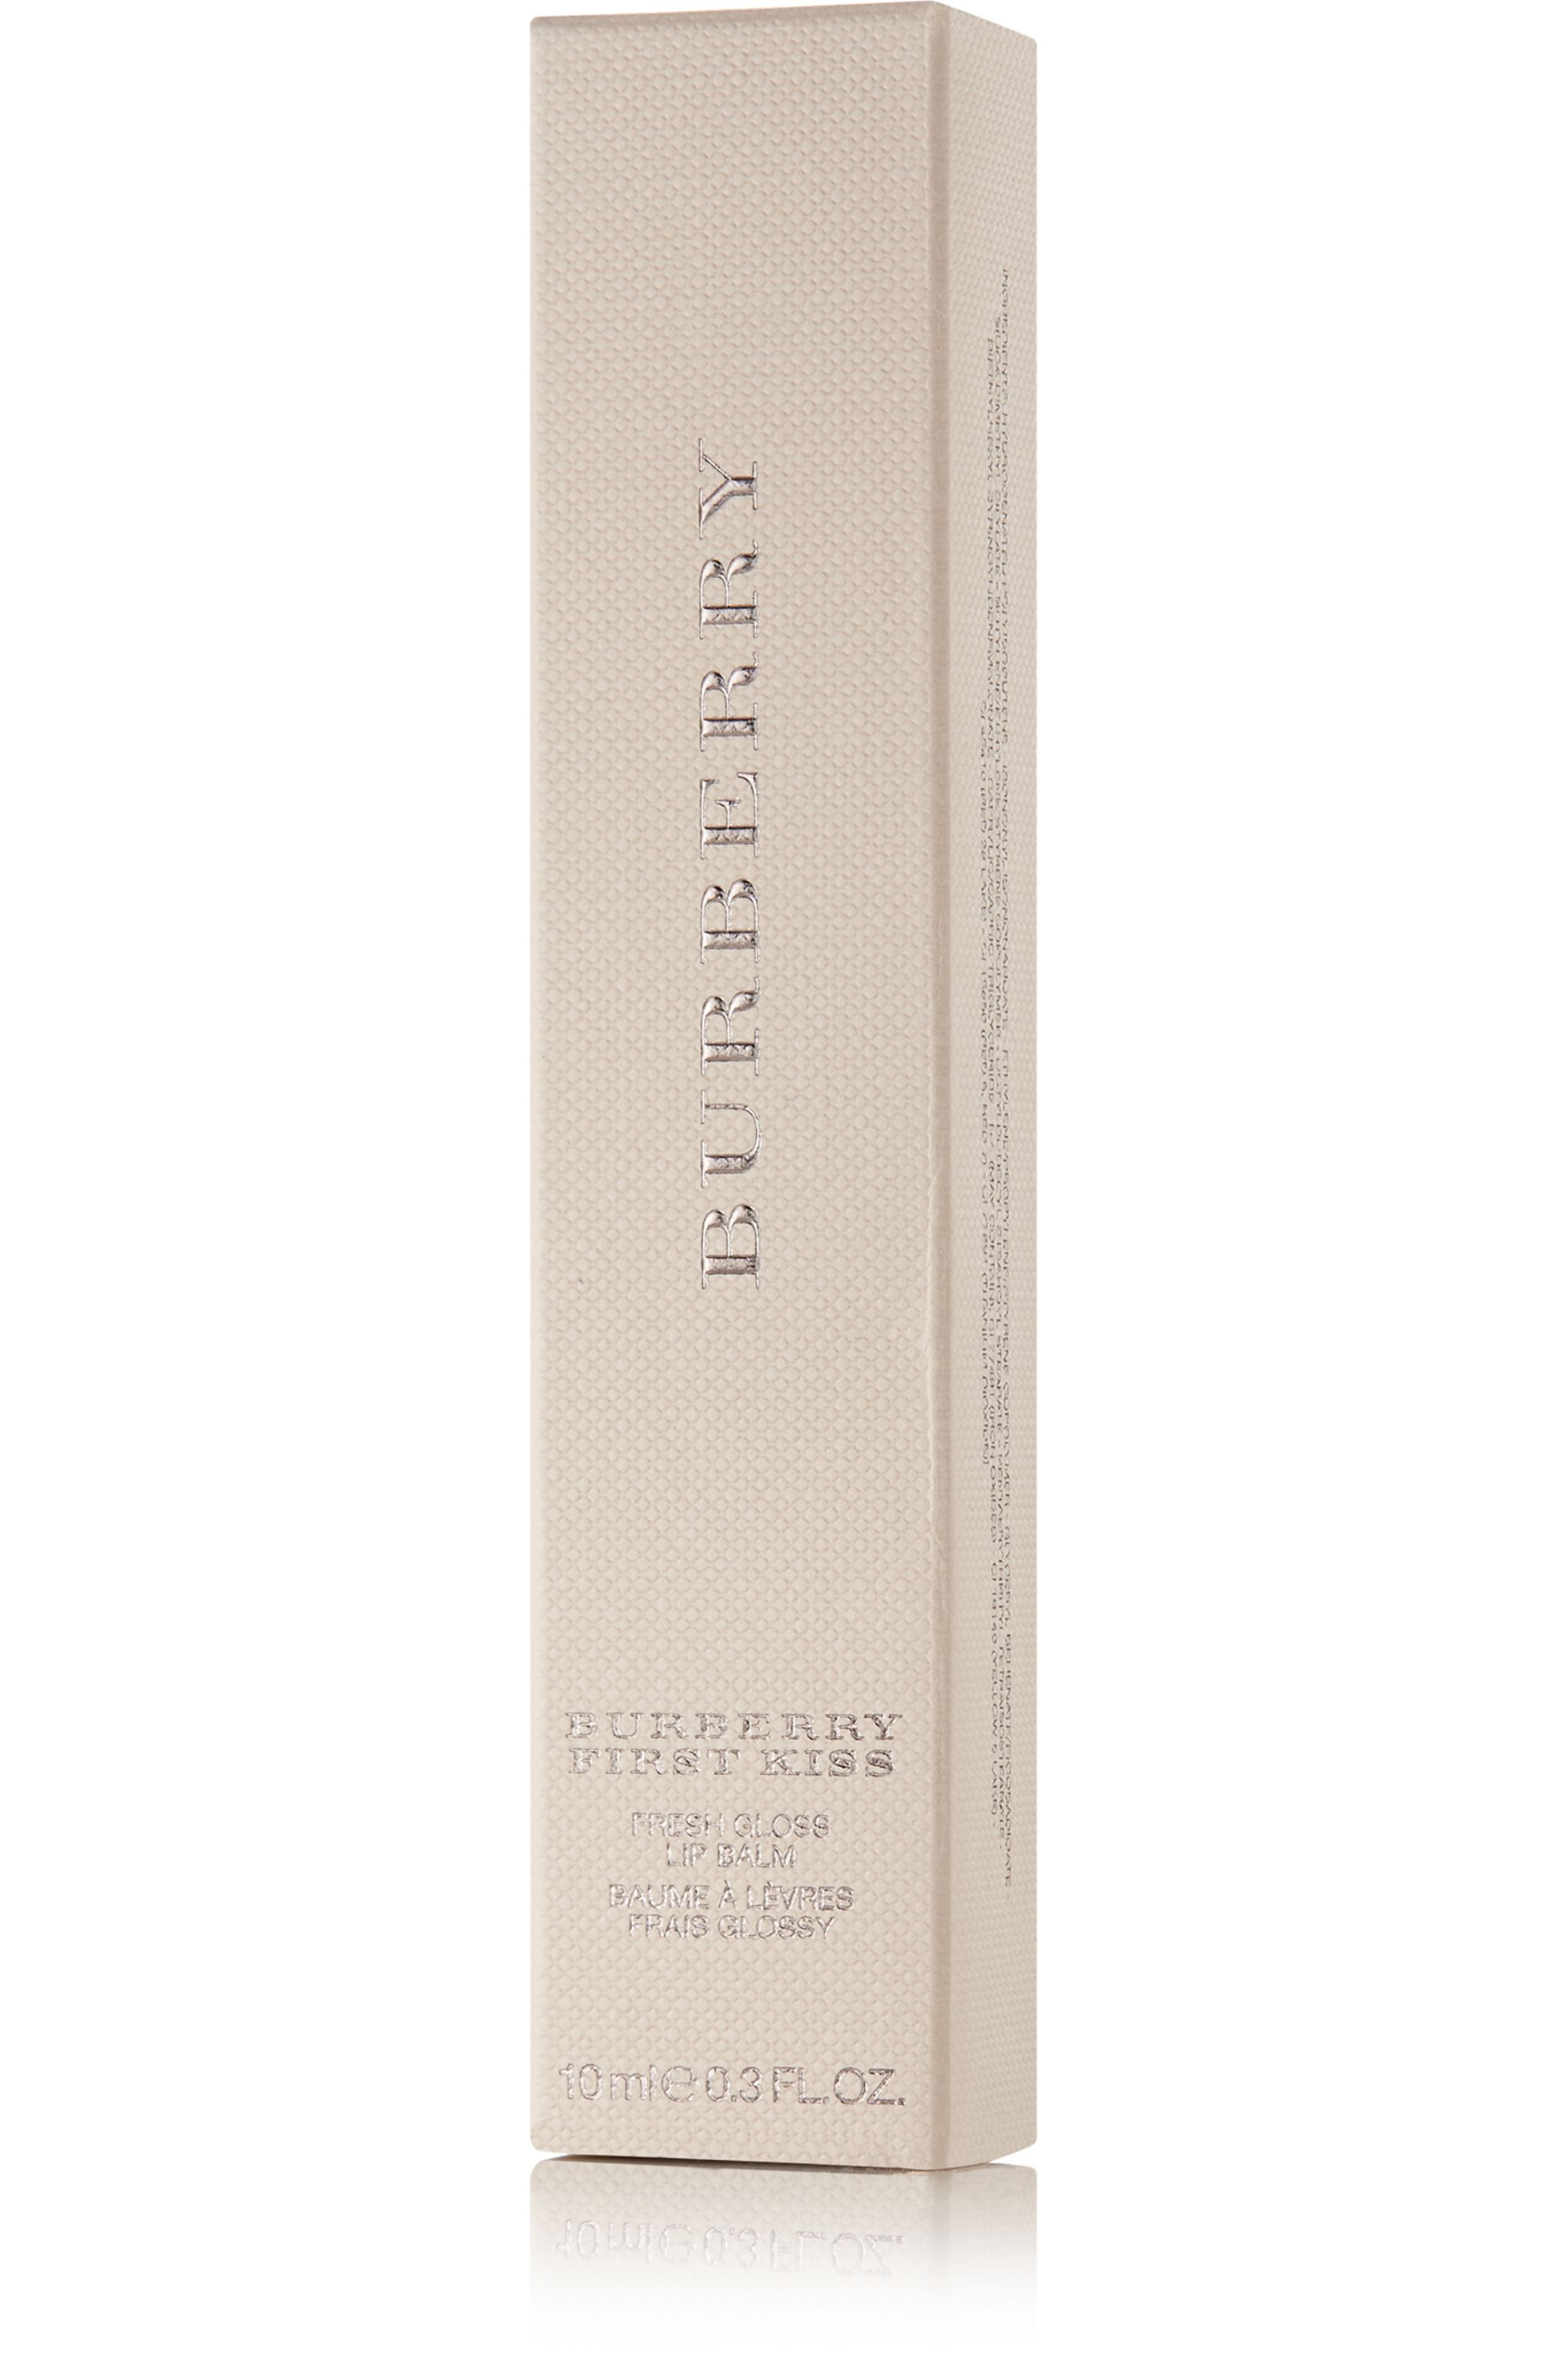 Burberry Beauty First Kiss - Coral Glow No.02